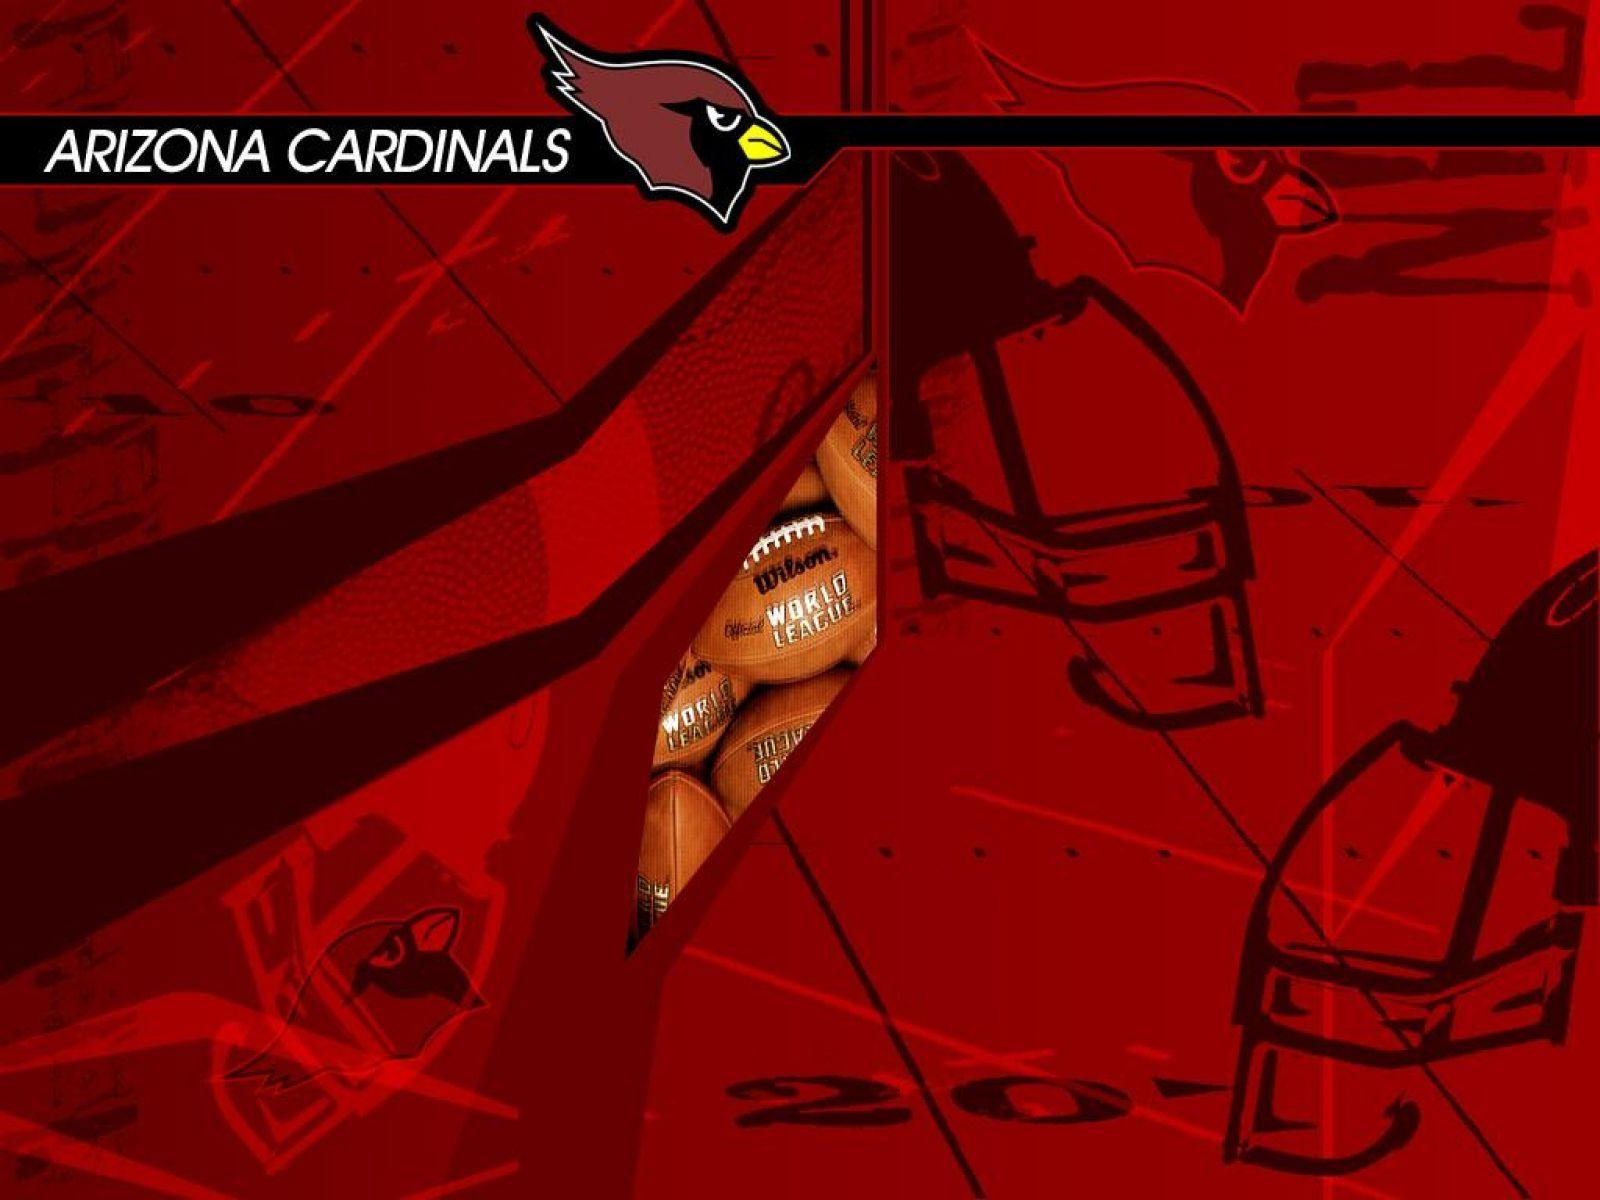 Arizona Cardinals Wallpapers High Quality | HD Wallpapers ...